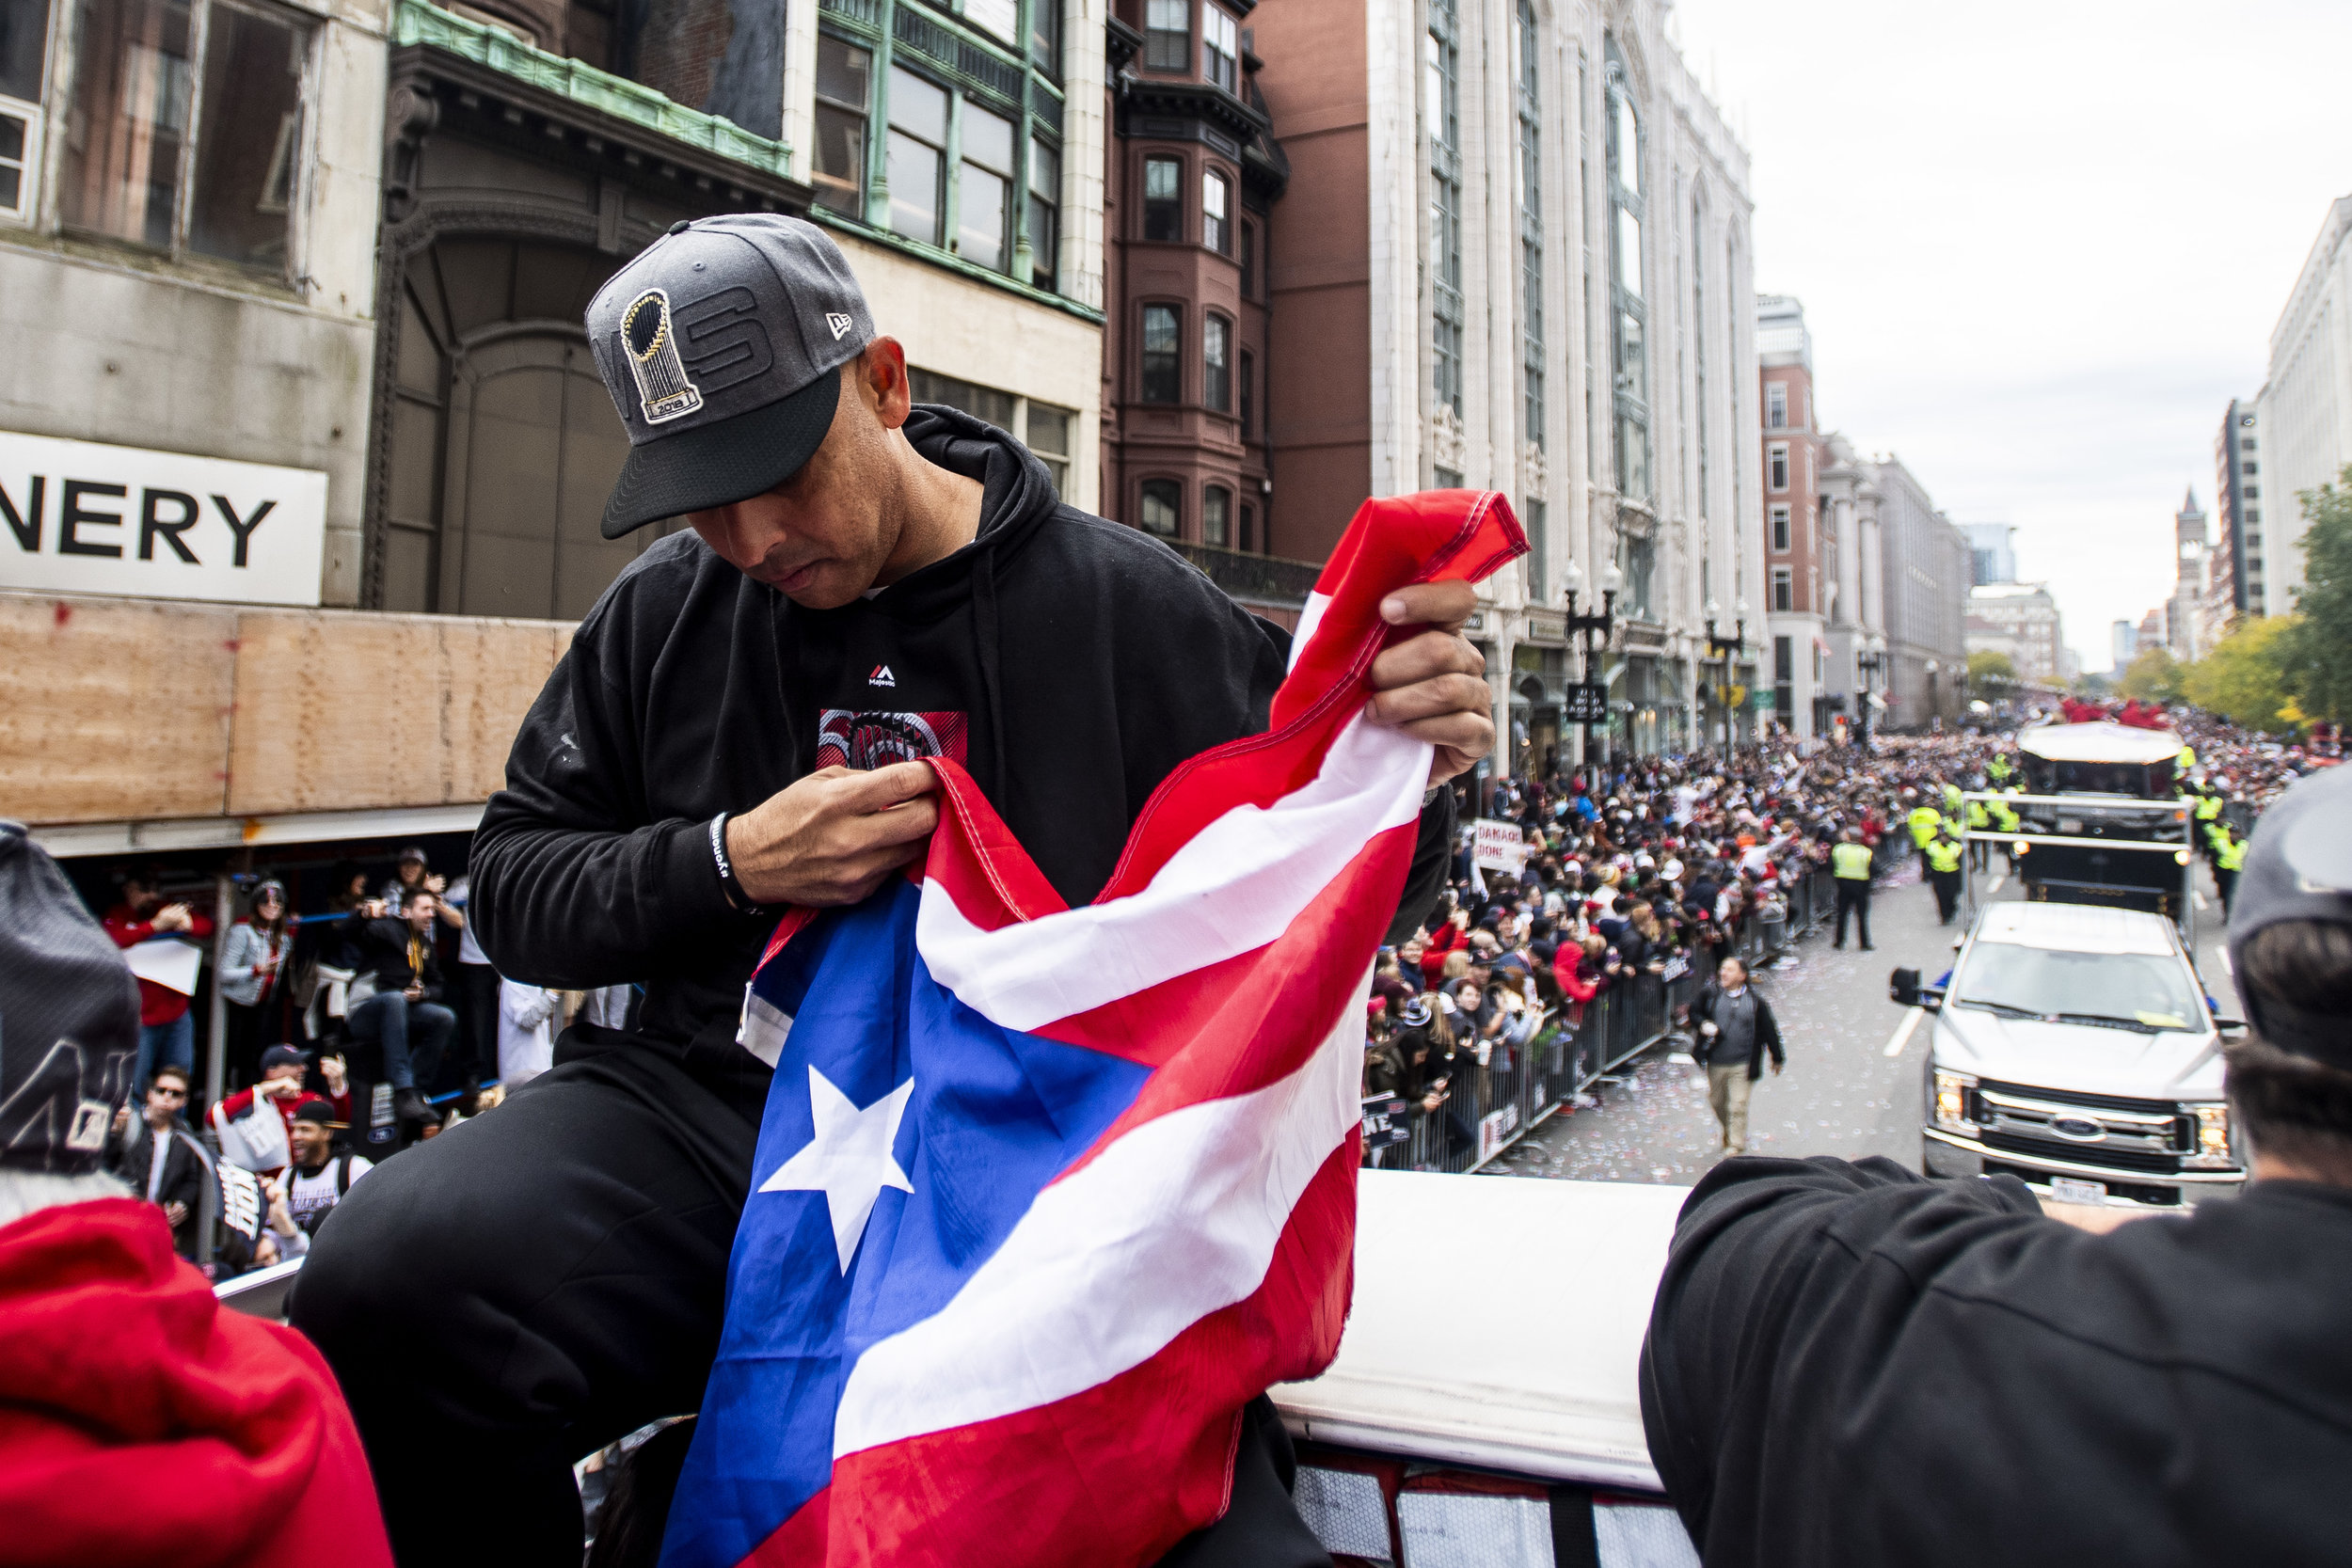 October 31, 2018, Boston, MA: Boston Red Sox Manager Alex Cora looks down at the Puerto Rican flag  as the Red Sox Celebrate the World Series Parade in Boston, Massachusetts on Wednesday, October 31, 2018. (Photo by Matthew Thomas/Boston Red Sox)